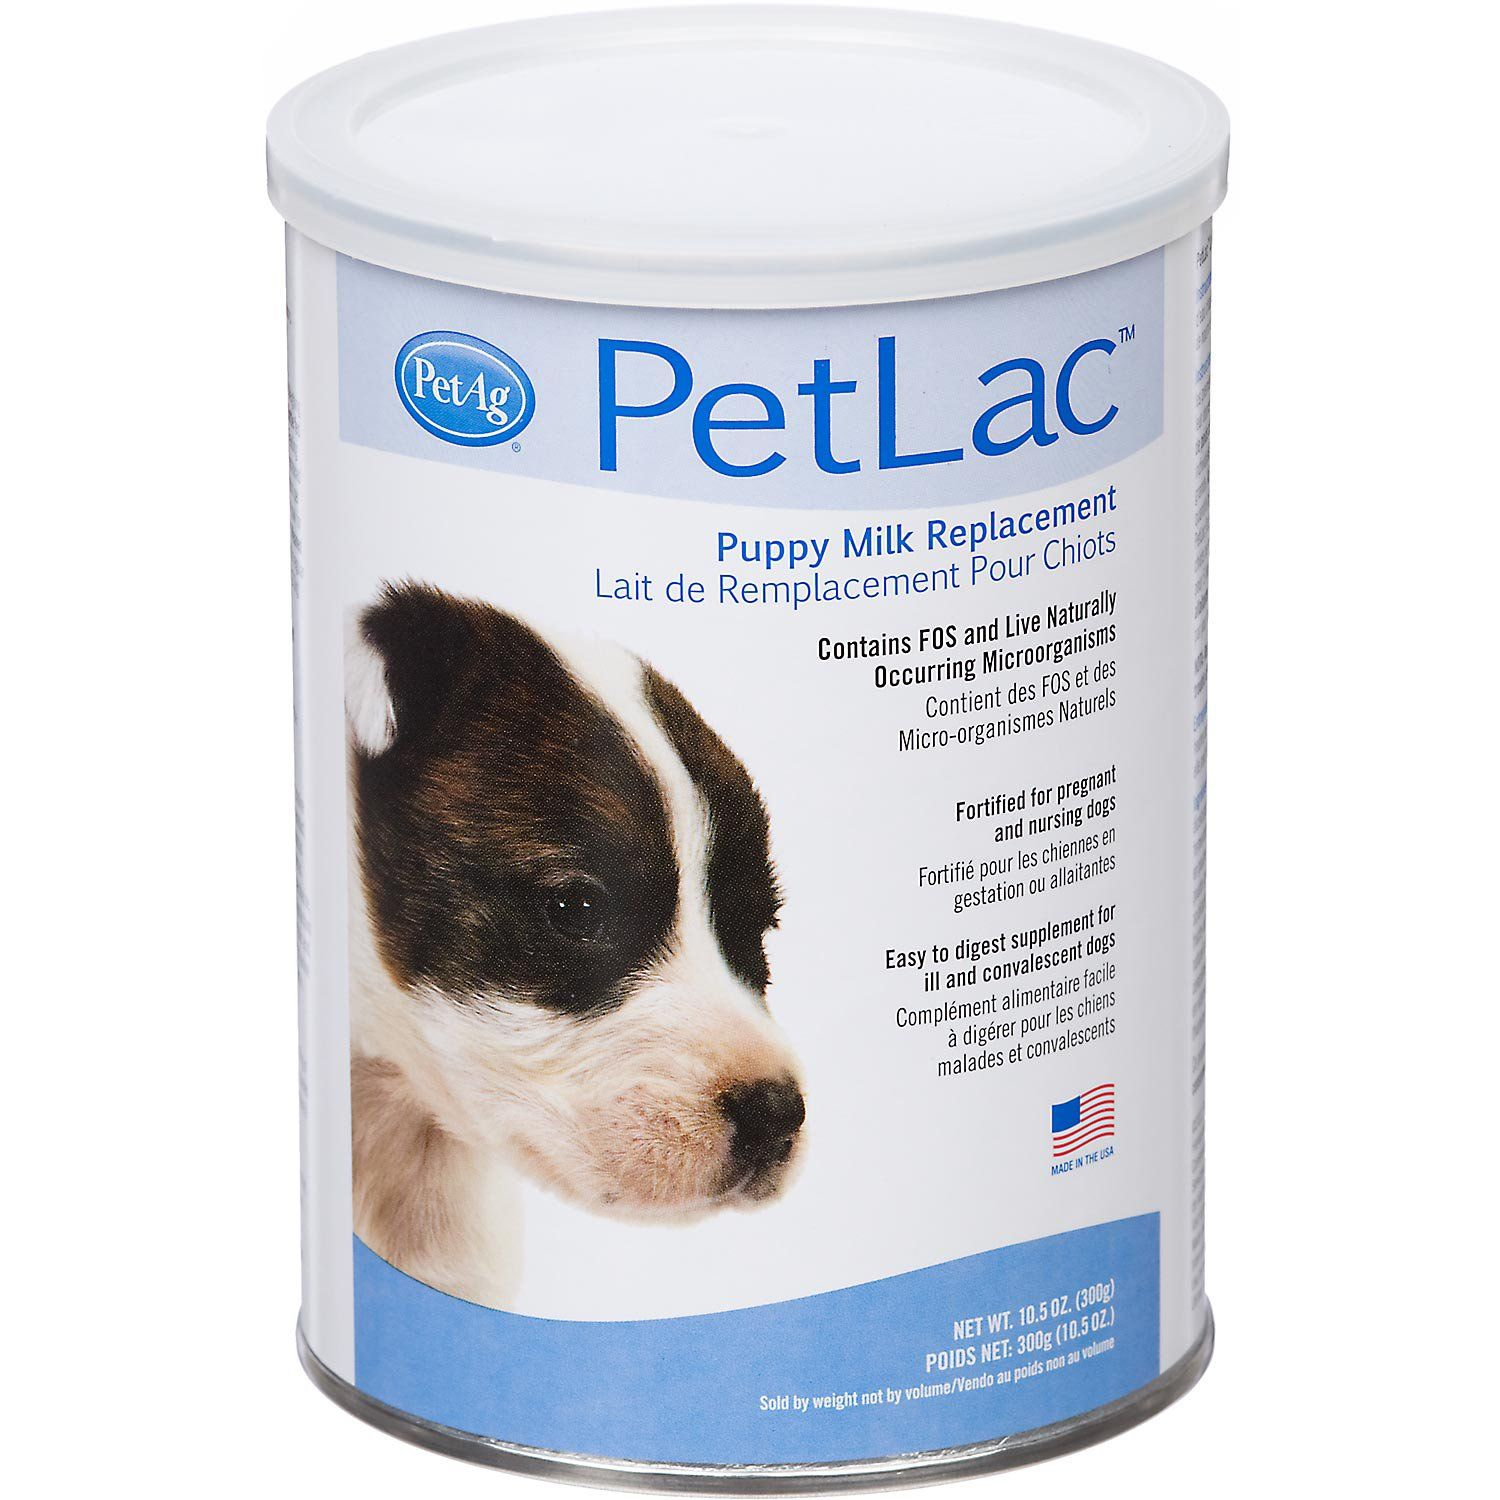 PetAg PetLac Puppy Milk Replacement Milk replacement